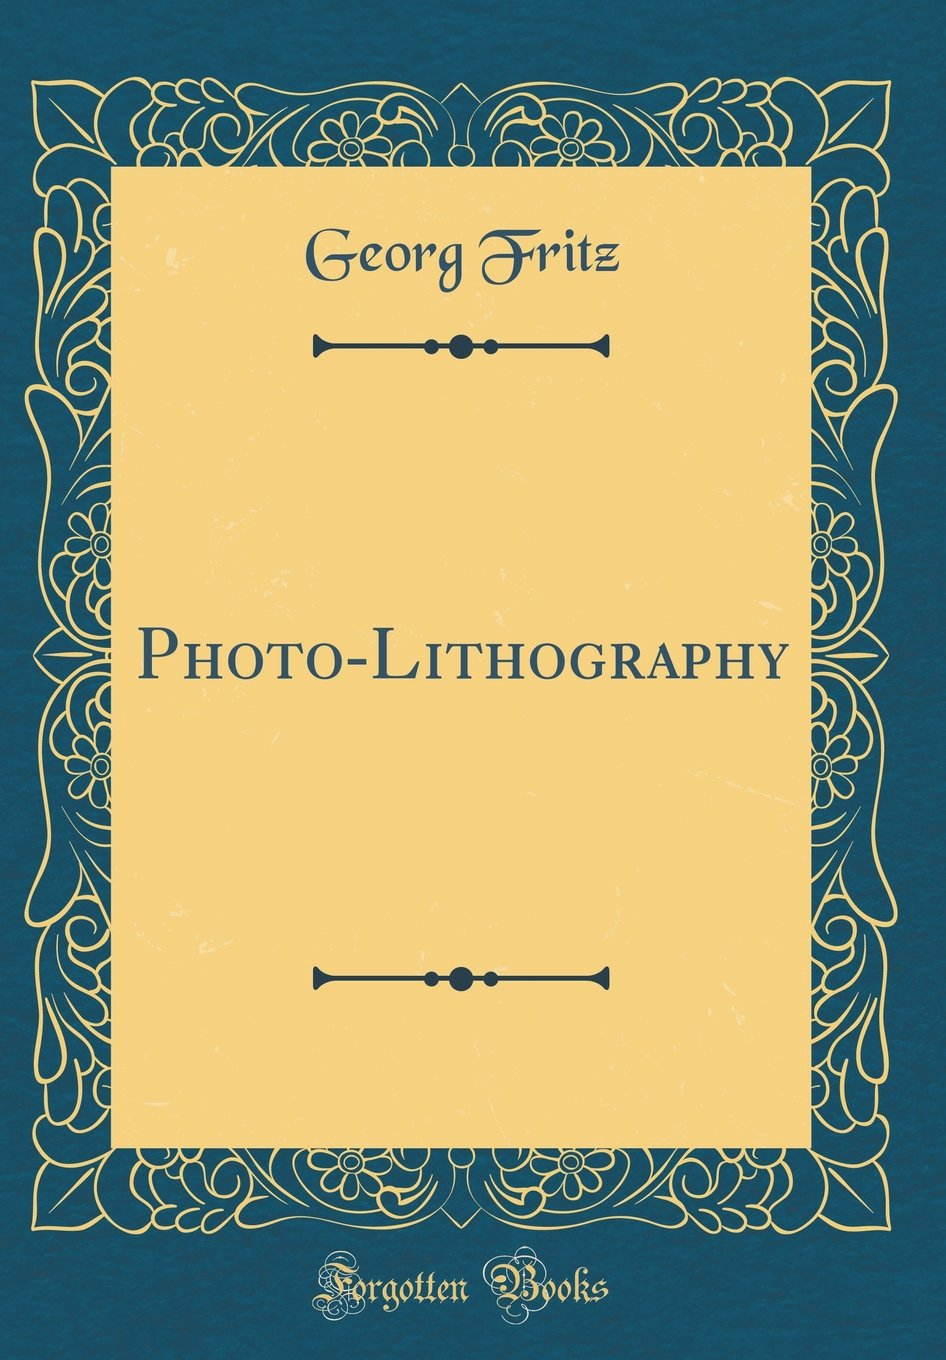 Photo Lithography Classic Reprint Georg Fritz 9780265787298 Photolithography Books